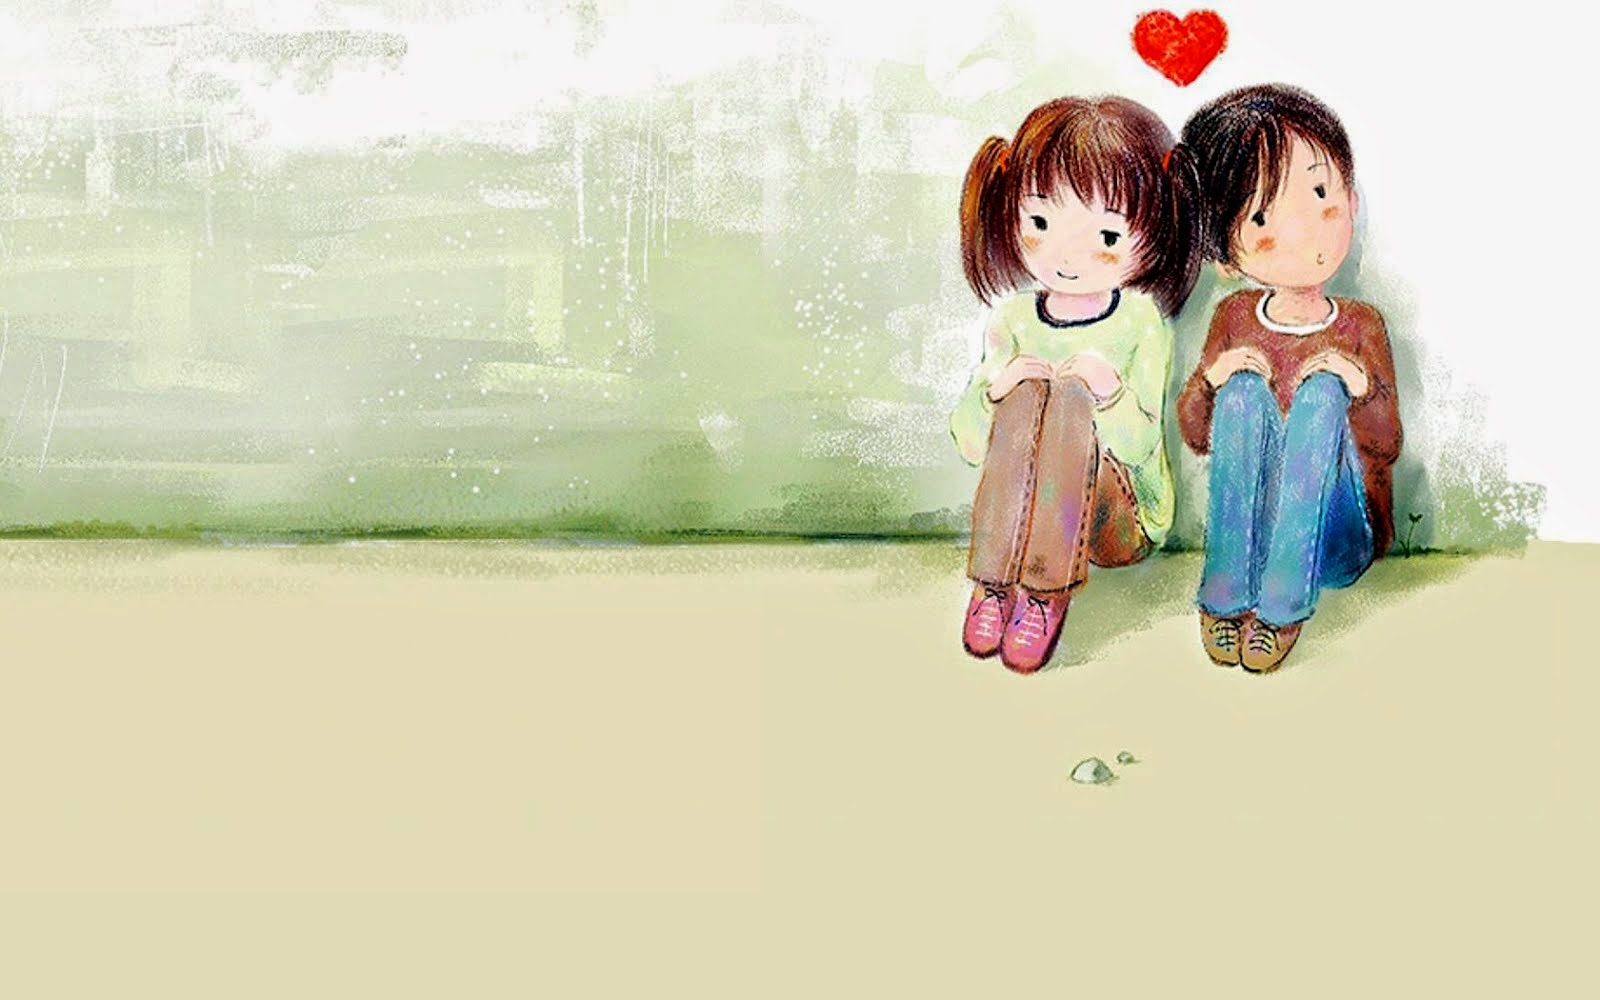 Love New cute cartoon Wallpaper : cute Little cartoon couple In Love HD Wallpaper Best Love HD Wallpapers